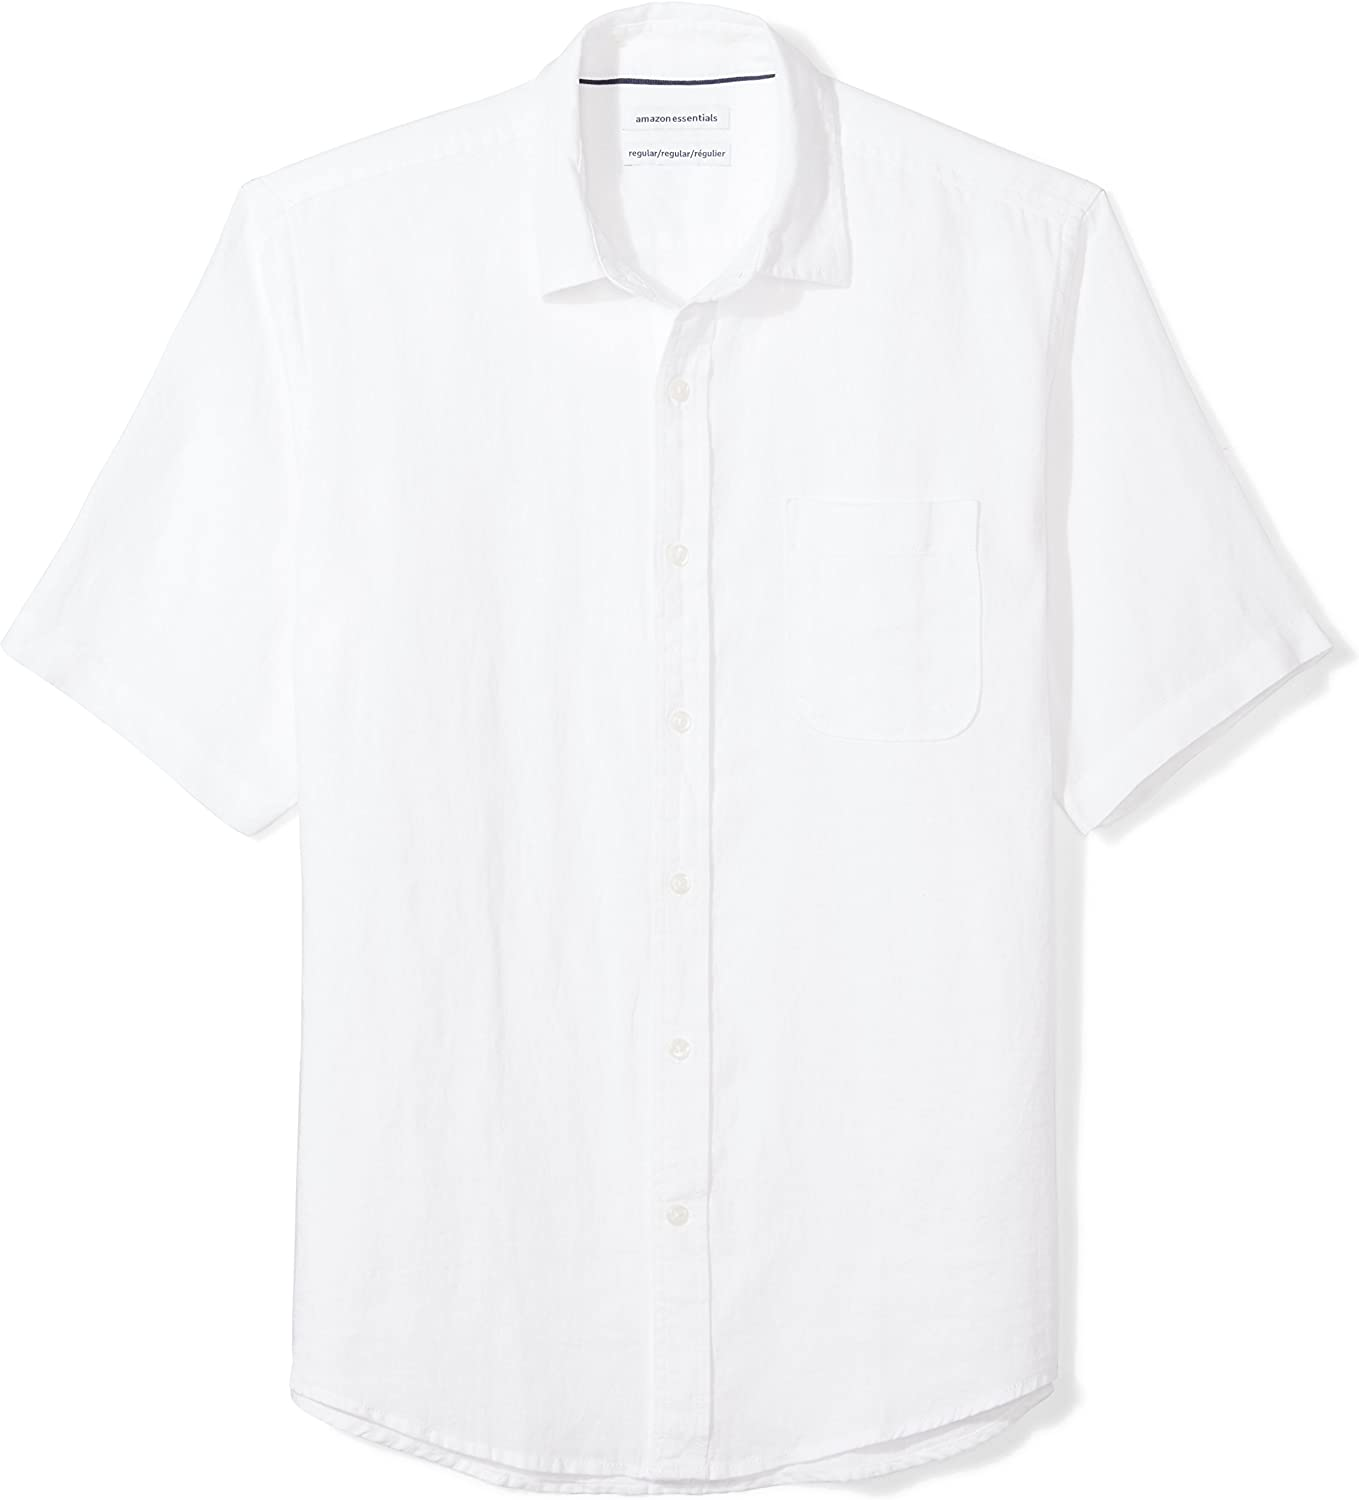 Amazon Essentials Men's Regular-Fit Short-Sleeve Linen Shirt